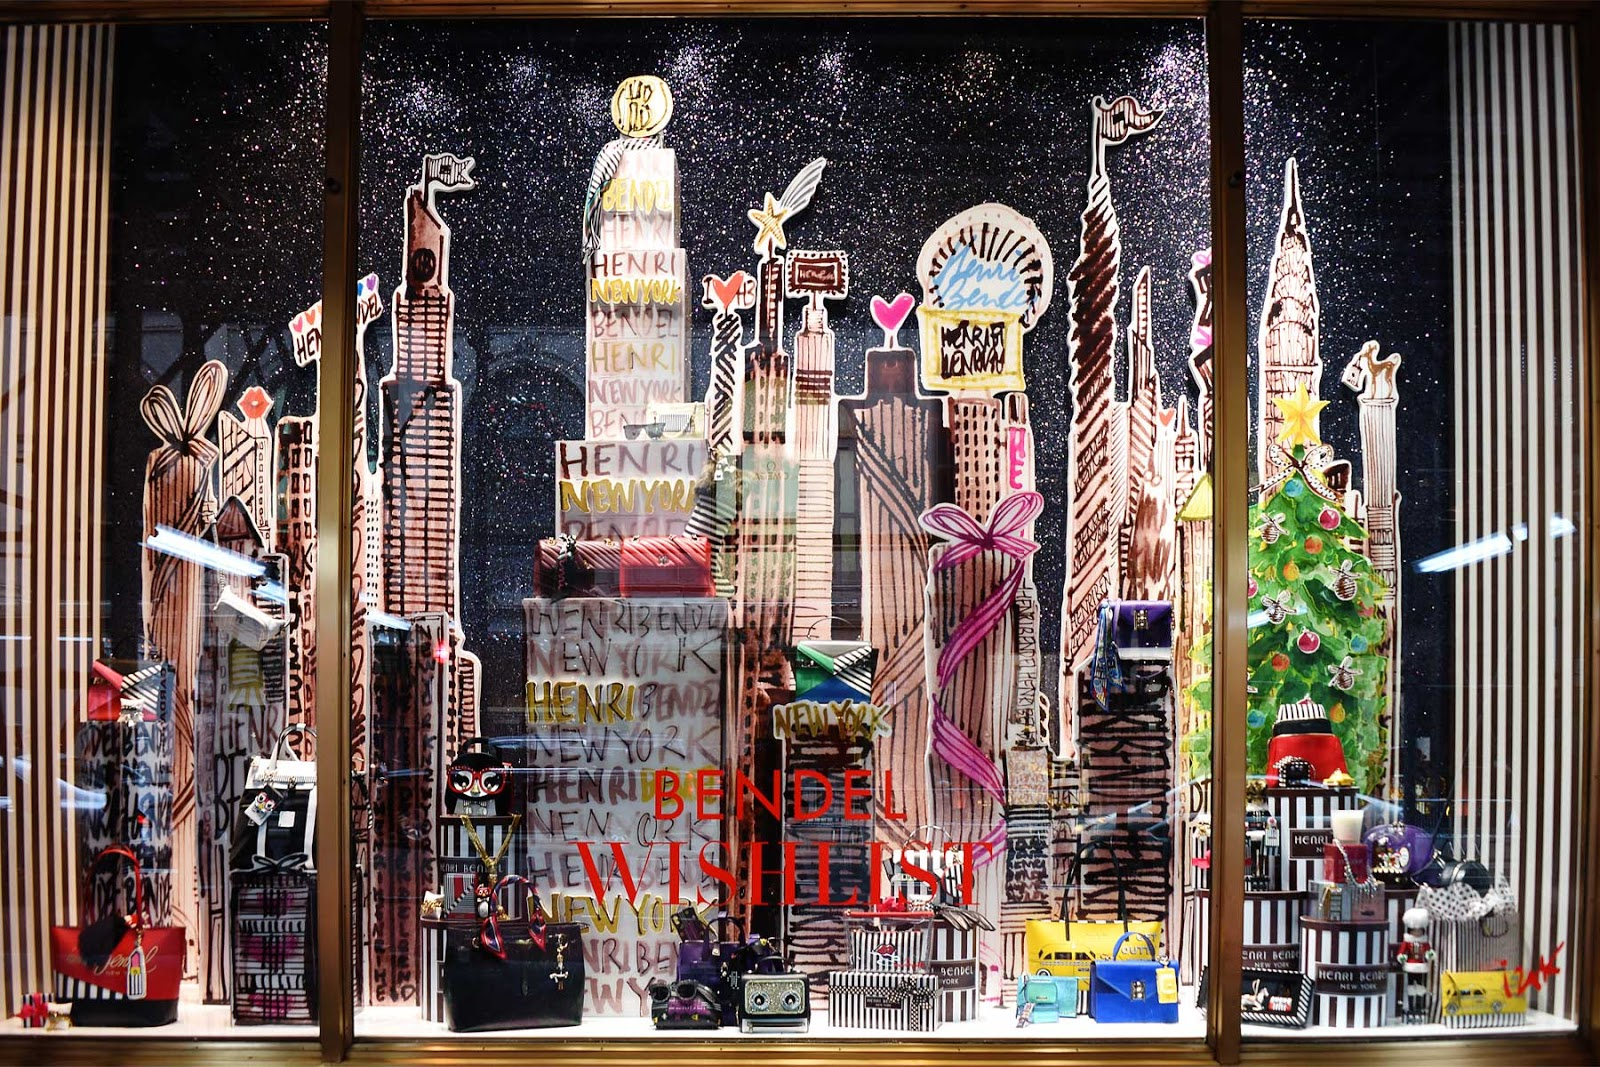 Henri Bendel Window 2018 New York Display